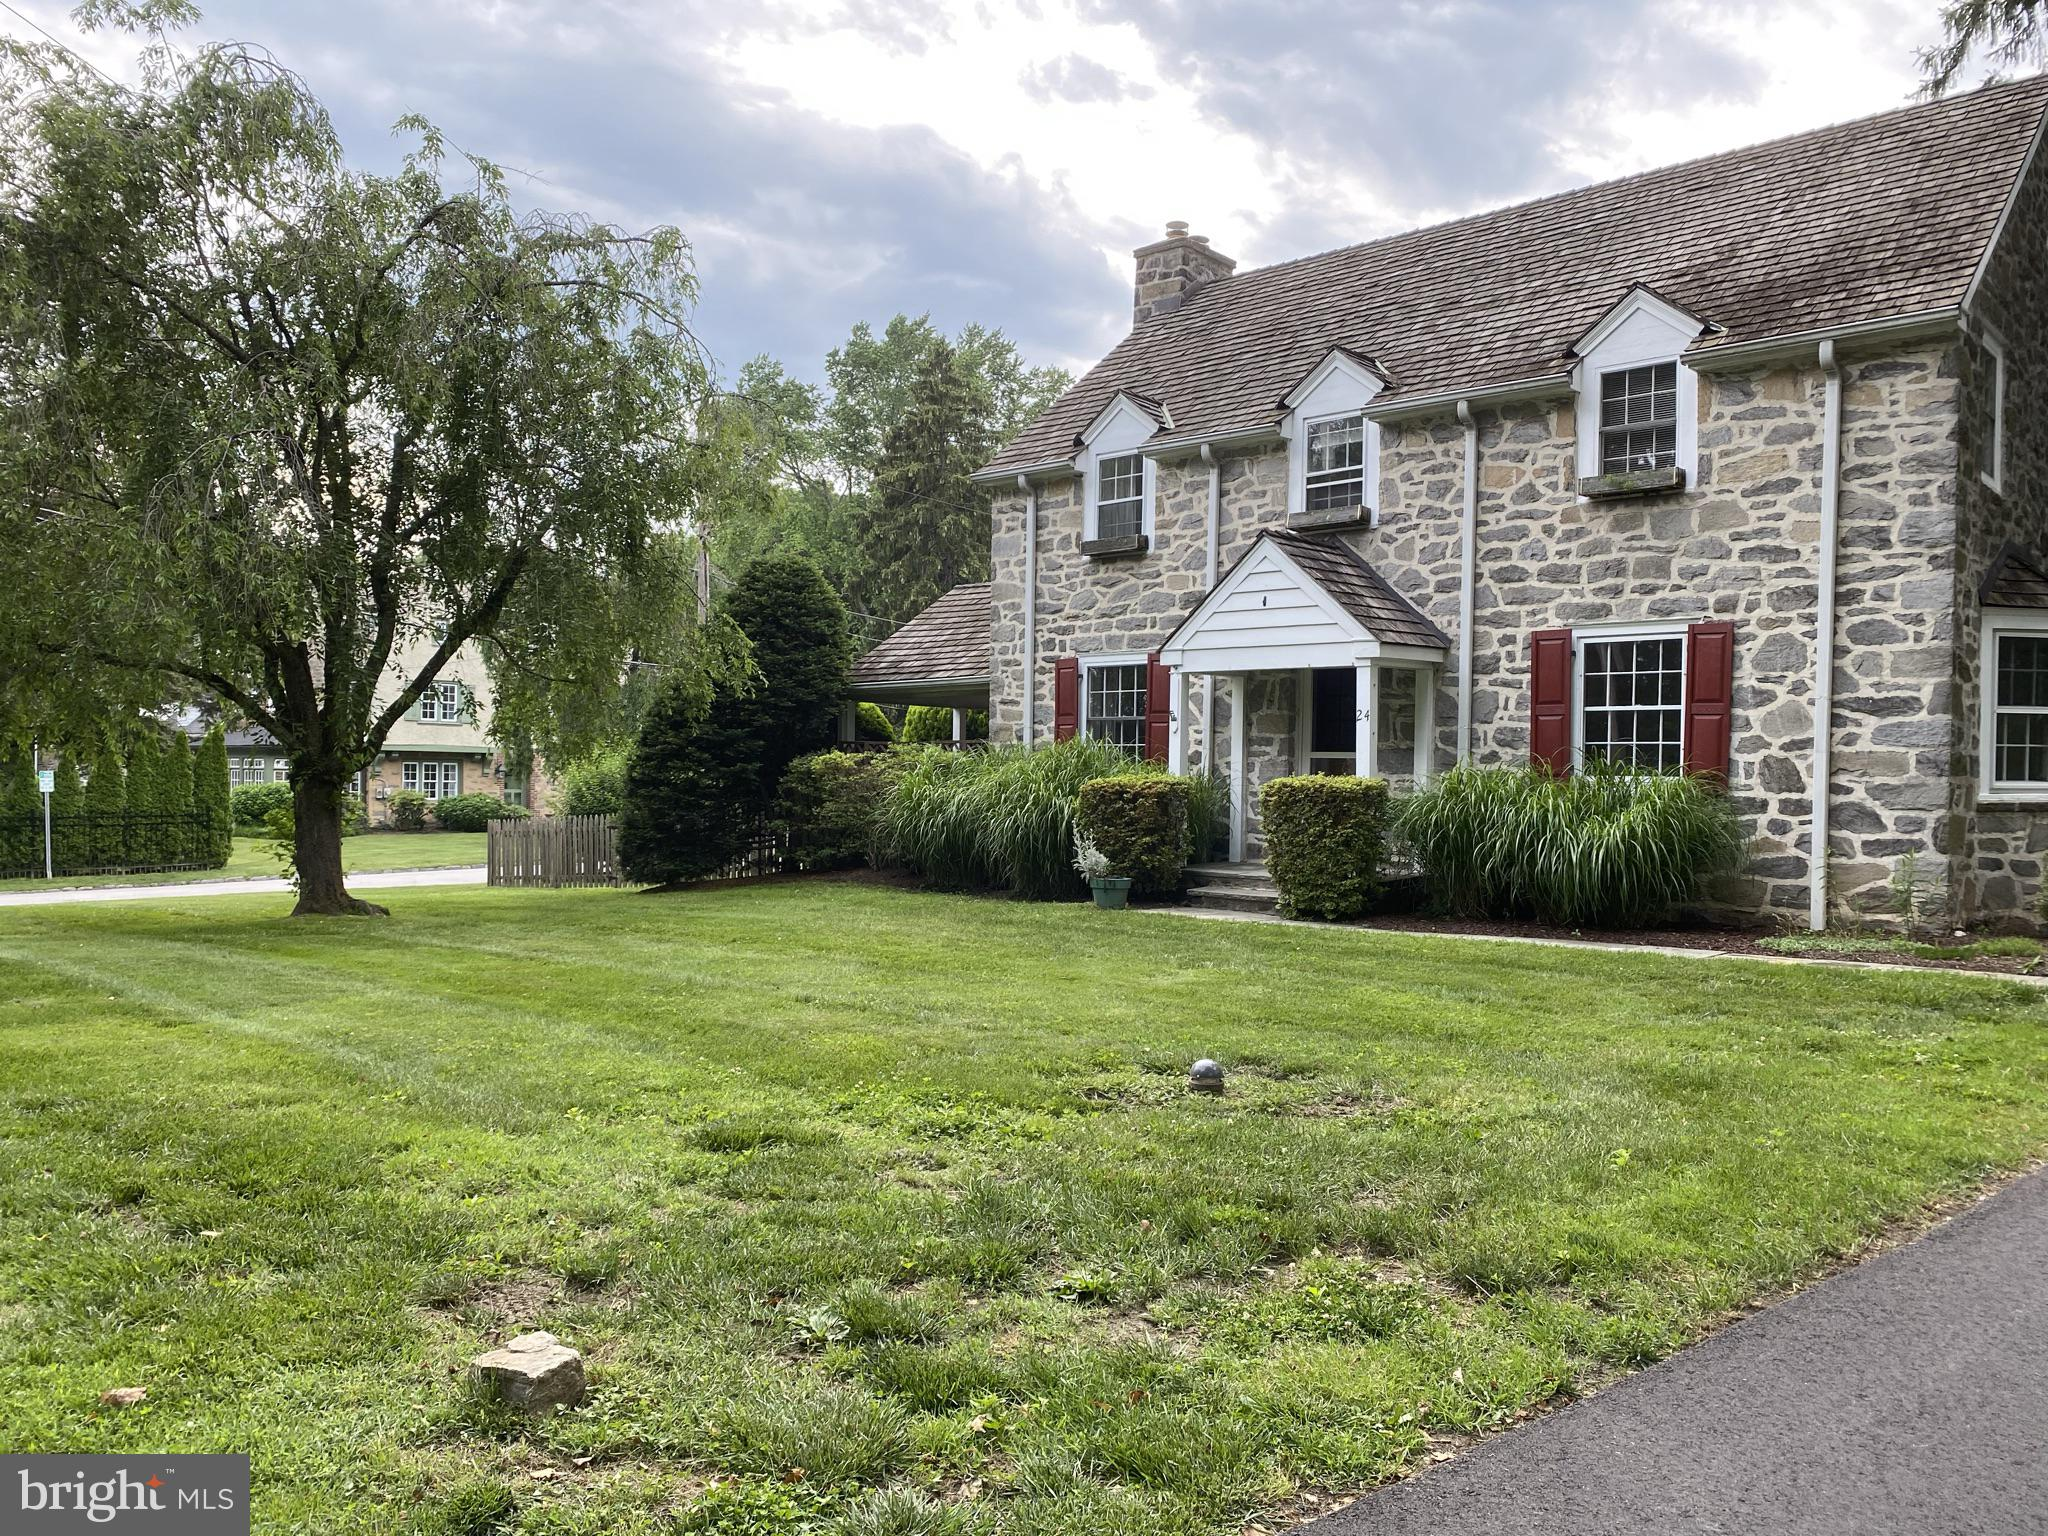 Center Hall Stone Colonial. Large Flat Corner Lot (.47 acres) with Fenced Side Yard.  Award-Winning Lower Merion Schools. Walkability within 1 mile: Transportation (NHSL, Paoli/Thorndale - Rosemont & Bryn Mawr, Bus), Universities (Villanova University, Rosemont College, Bryn Mawr College), Parks (Harriton, Ashbridge, Austin Memorial, Unkefer, Emlen Tunnel, Clem Macrone) Bryn Mawr Hospital, Dining, Coffee, Shopping, Grocery. Minutes to 476. This home emotes quality and charm. Large living room with wood burning fireplace, custom built-ins, and access to a side covered porch with mature landscaping to provide privacy. Dining room with crown molding and large bay window providing lots of light. Kitchen features stainless steel appliances, hardwood floors, breakfast nook and backyard/driveway access. 2nd Floor includes 4 Generous Bedrooms and 3 Full Baths! Main Bedroom has En-Suite and access to 3rd Floor Bonus Room.  Large Basement with Natural Light, Exposed Beams, 1/2 bath, Laundry Area and Ample Storage! Note, many homeowners of this style kitchen have removed the kitchen/dining room wall and made a lovely, large new area. Also consider all of the property where one could expand if so desired.